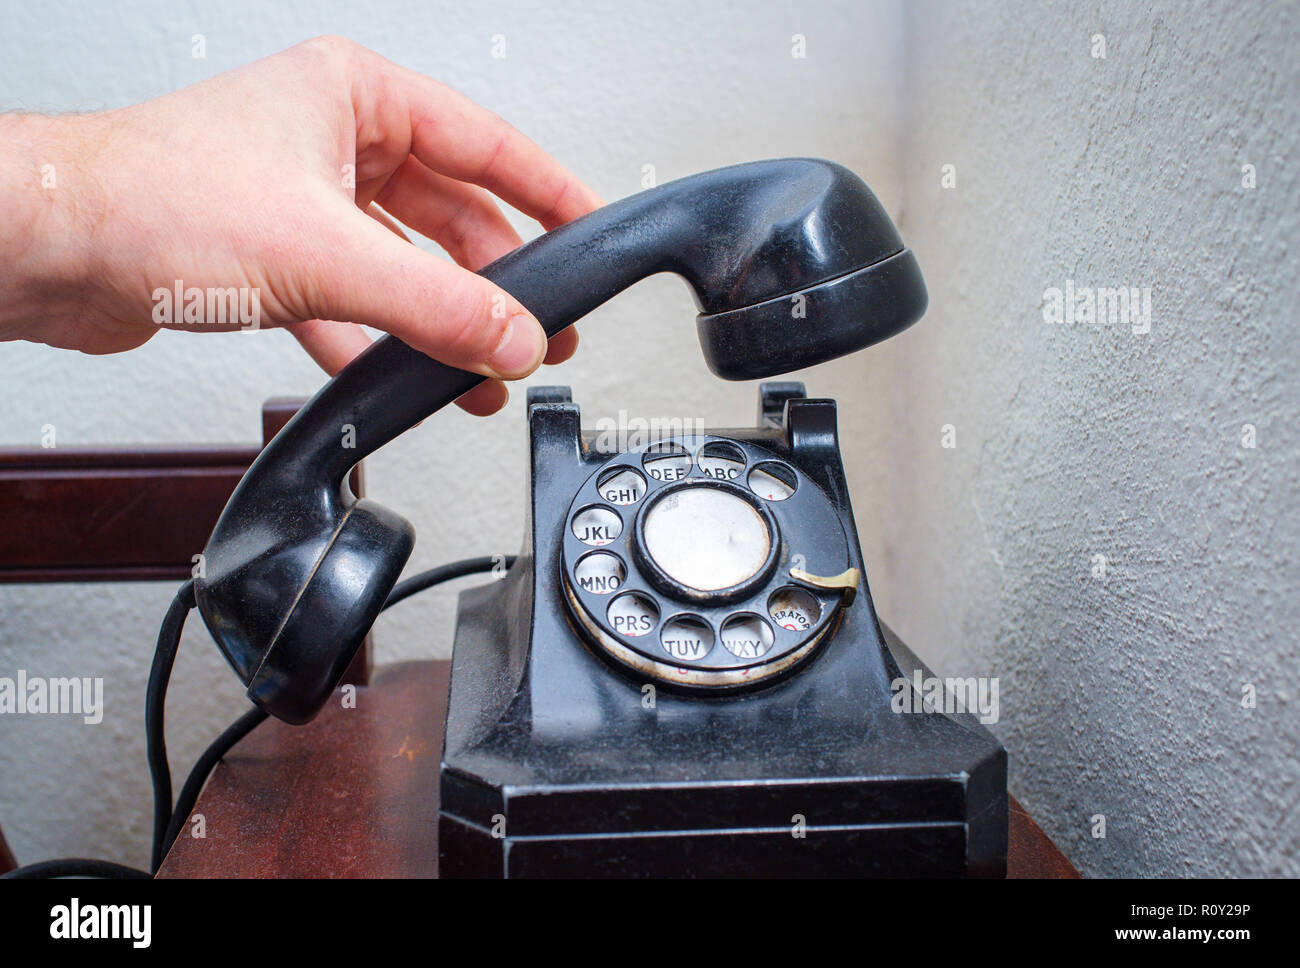 Old vintage rotary dial telephone on wooden desk - Stock Image